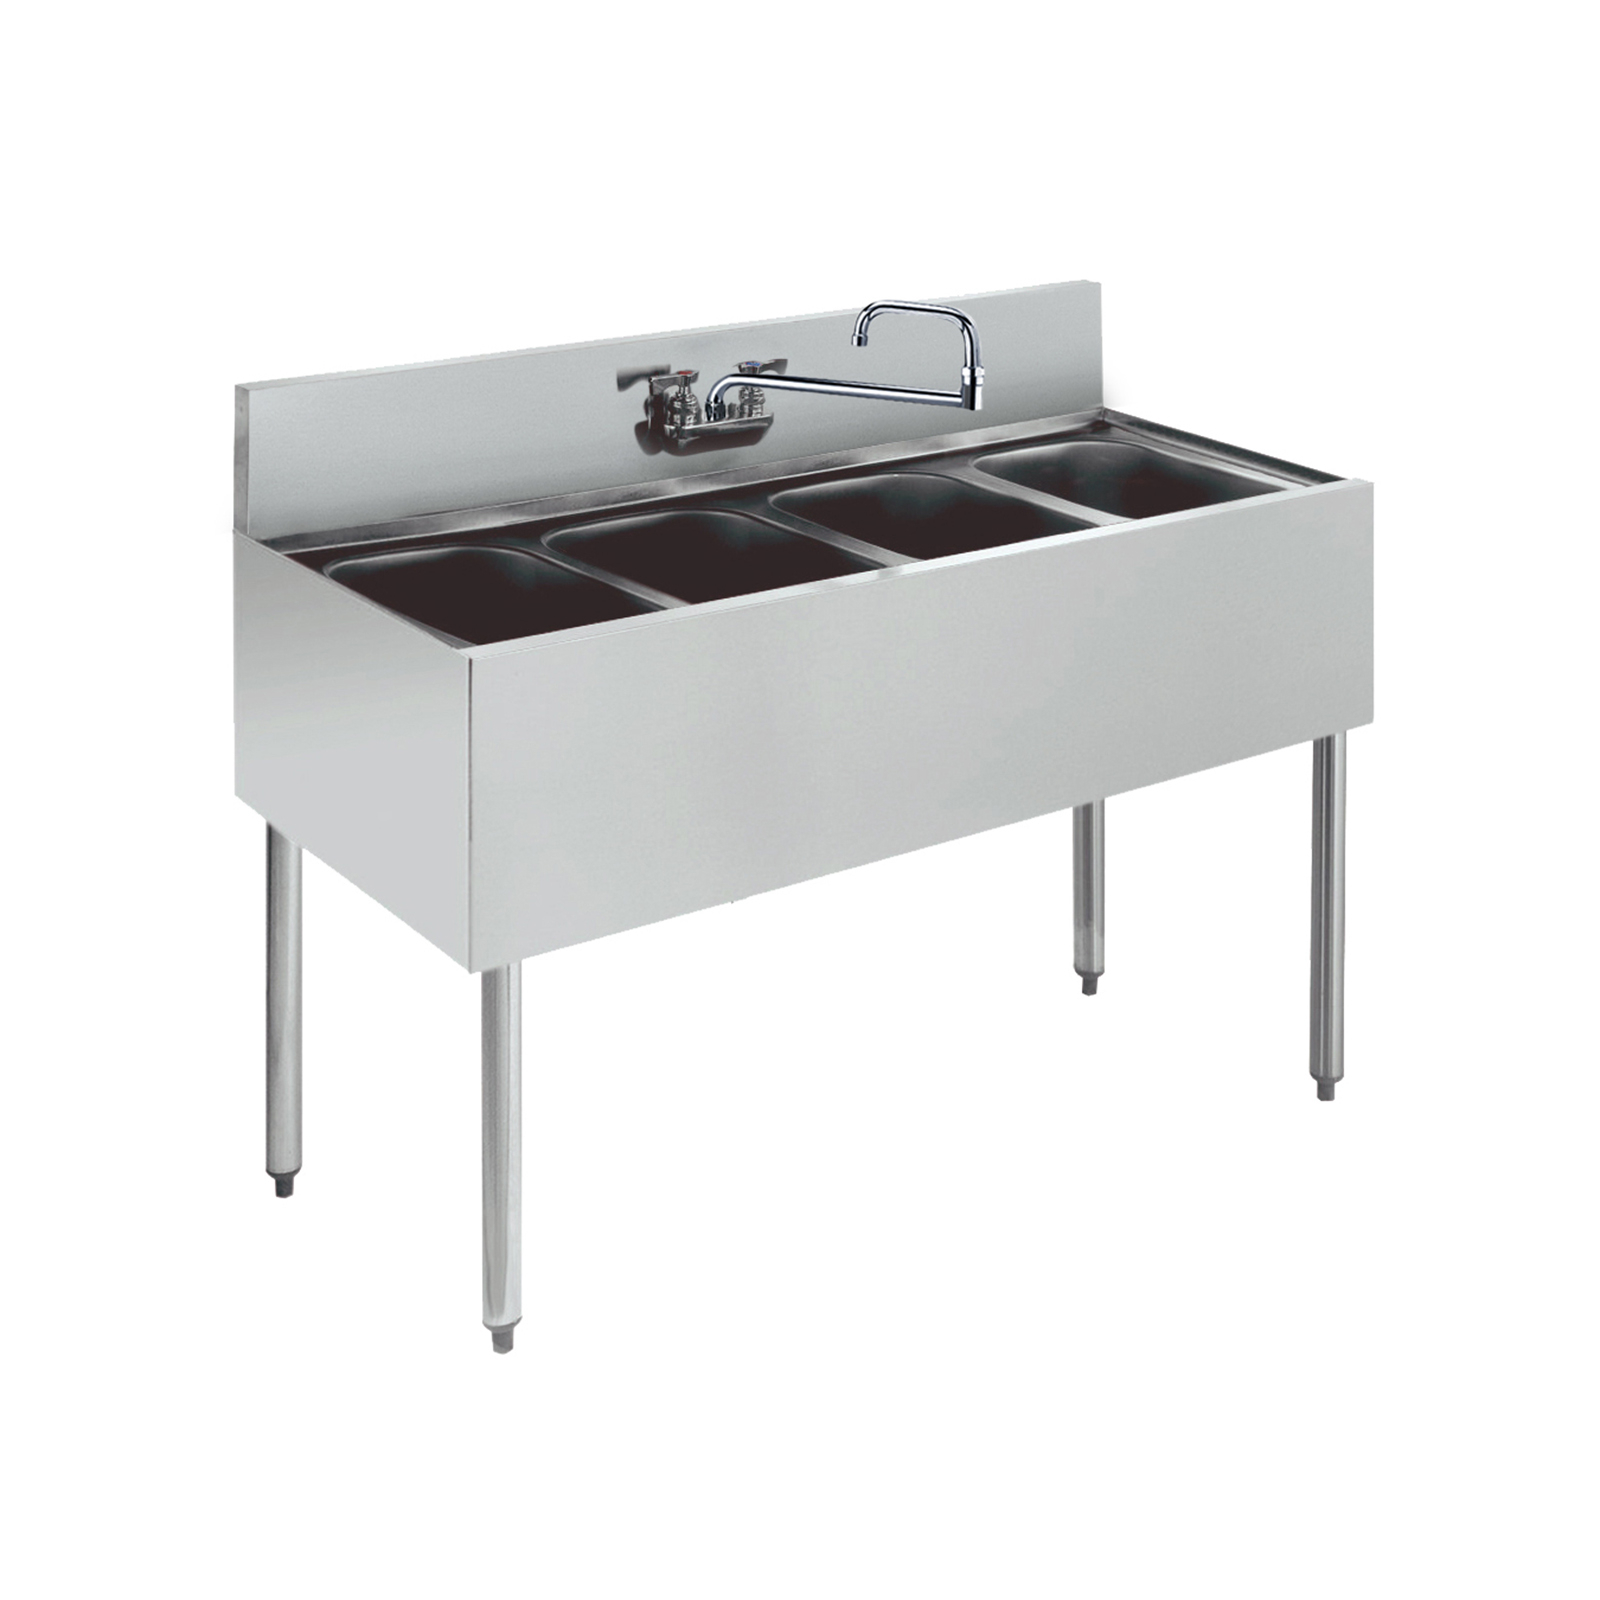 Krowne Metal KR21-44C underbar sink units